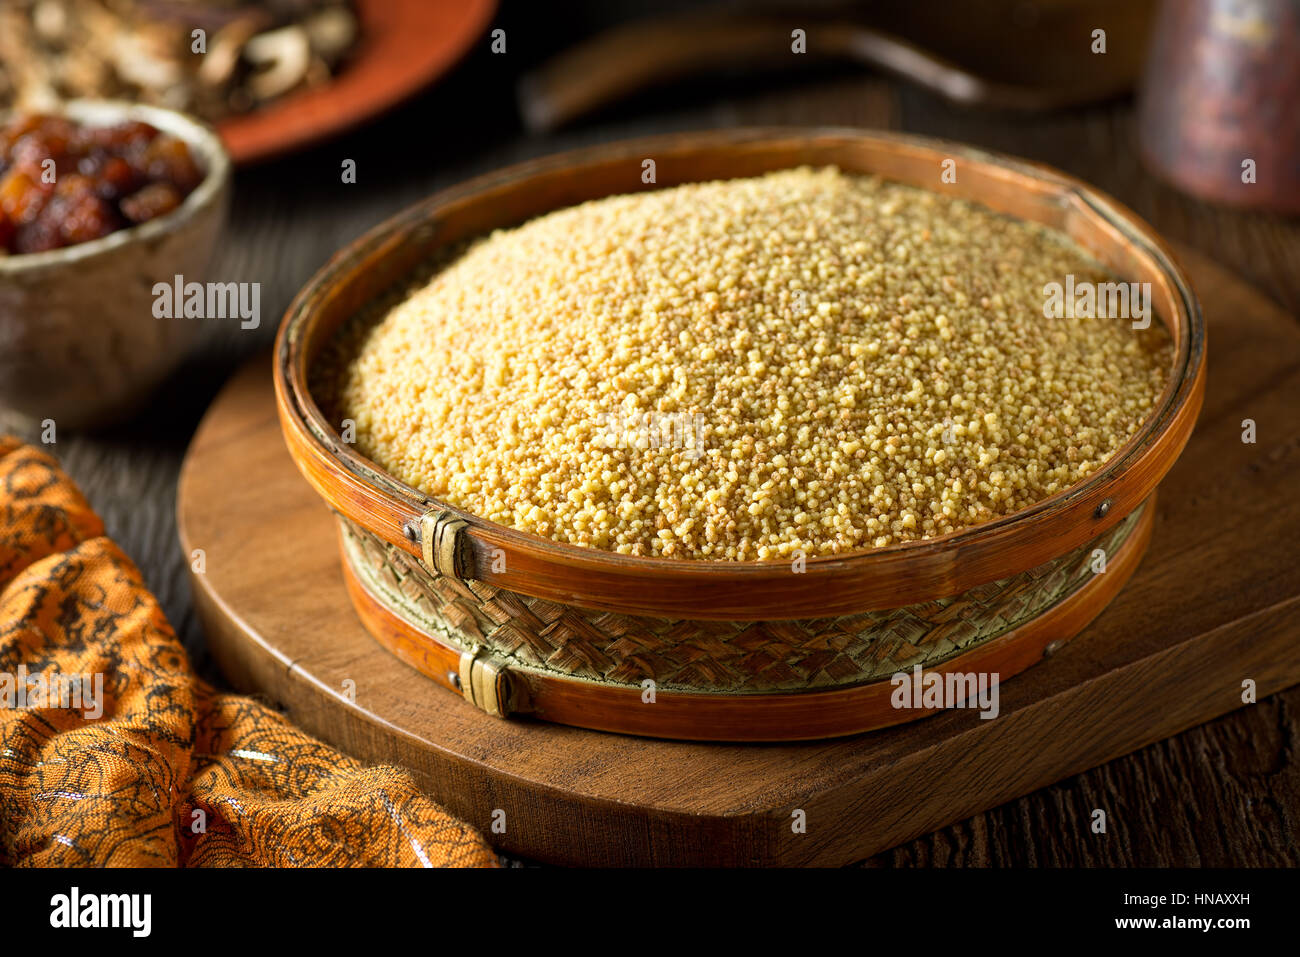 A bowl of raw organic couscous. - Stock Image